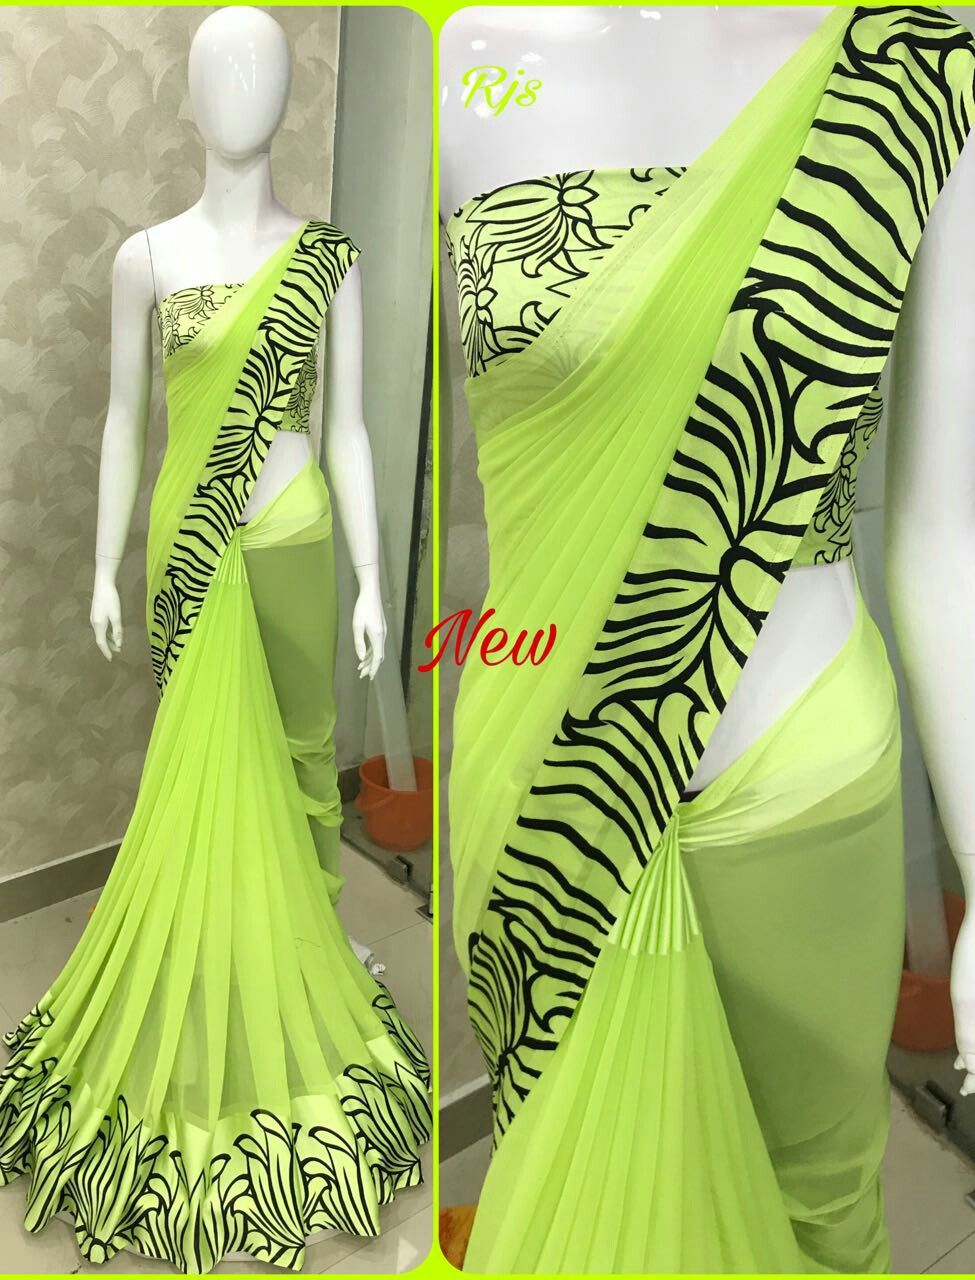 happy new year all new designs and new colours _georgette sarees with satin patta note multiples available same sarees with border _singles jus 1399